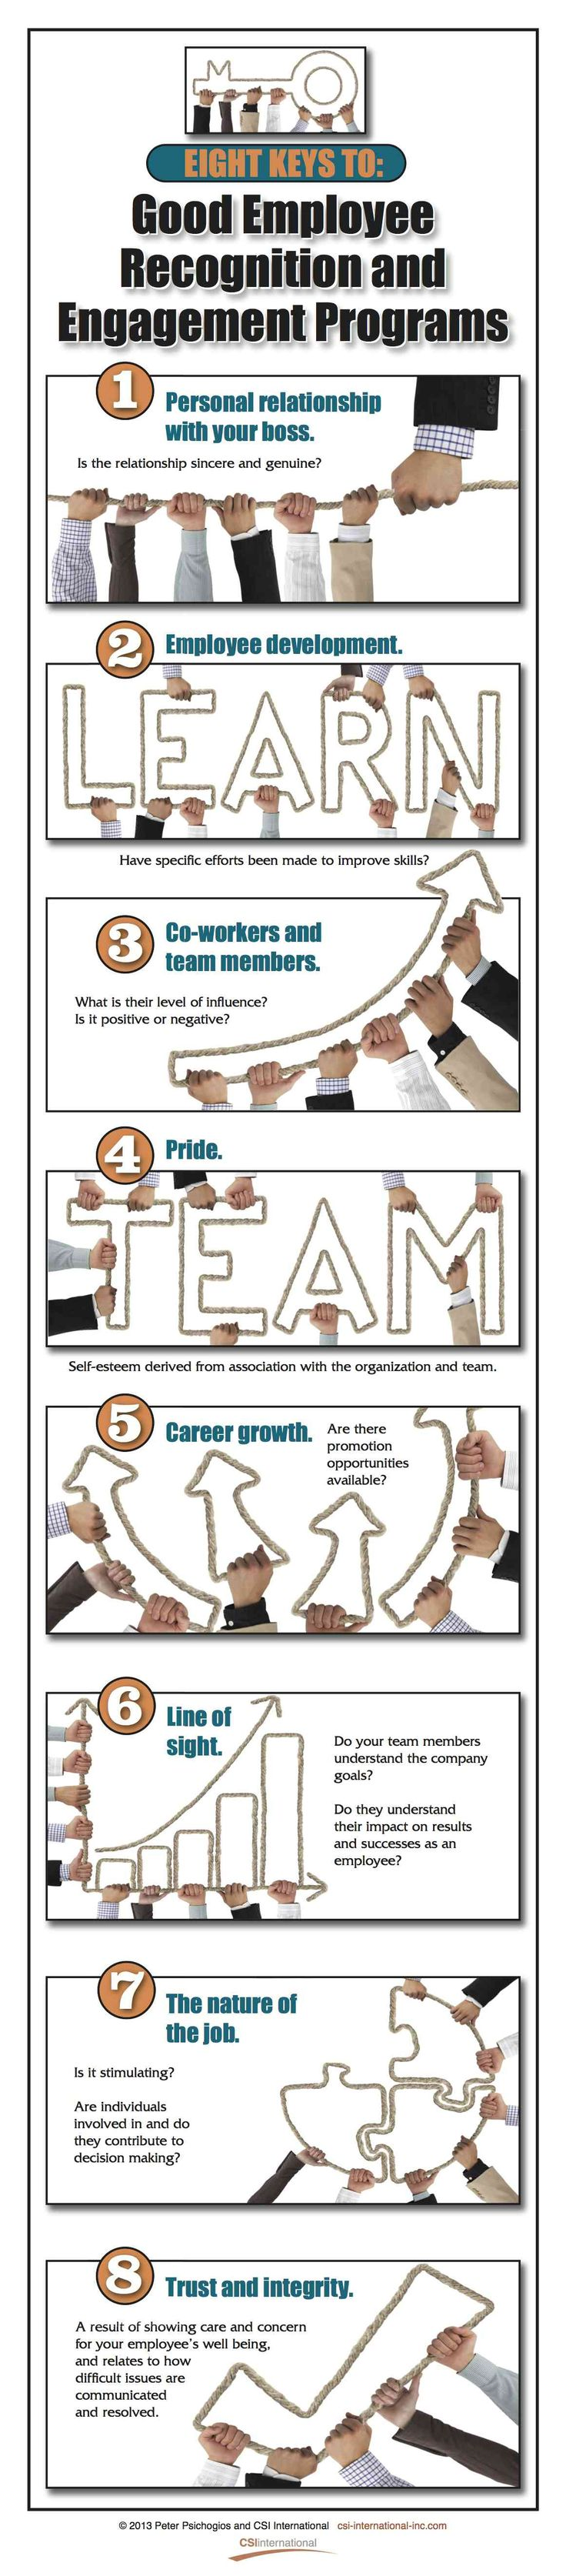 8 Keys To Good Employee Recognition and Engagement Programs